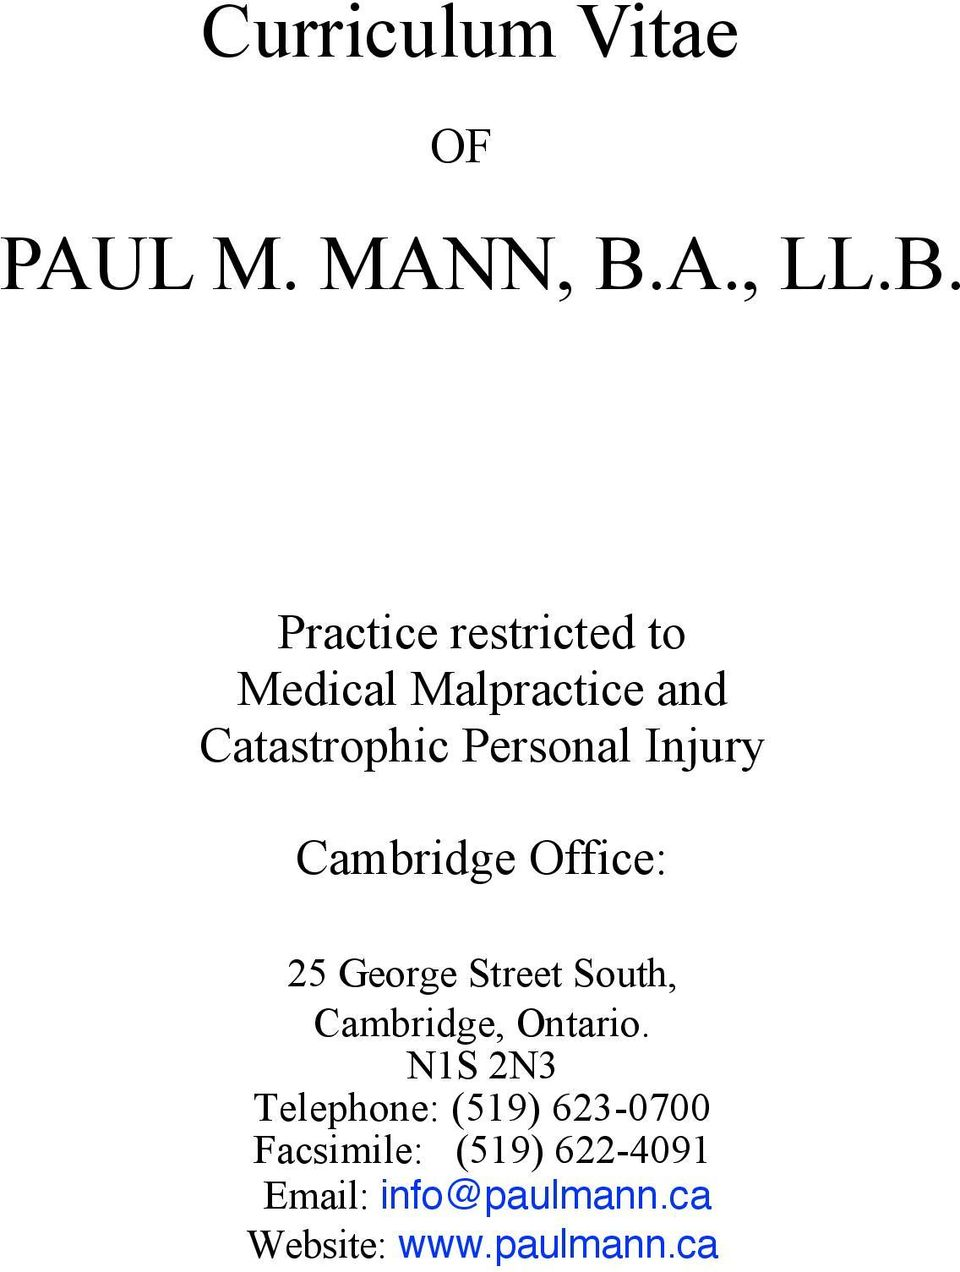 Practice restricted to Medical Malpractice and Catastrophic Personal